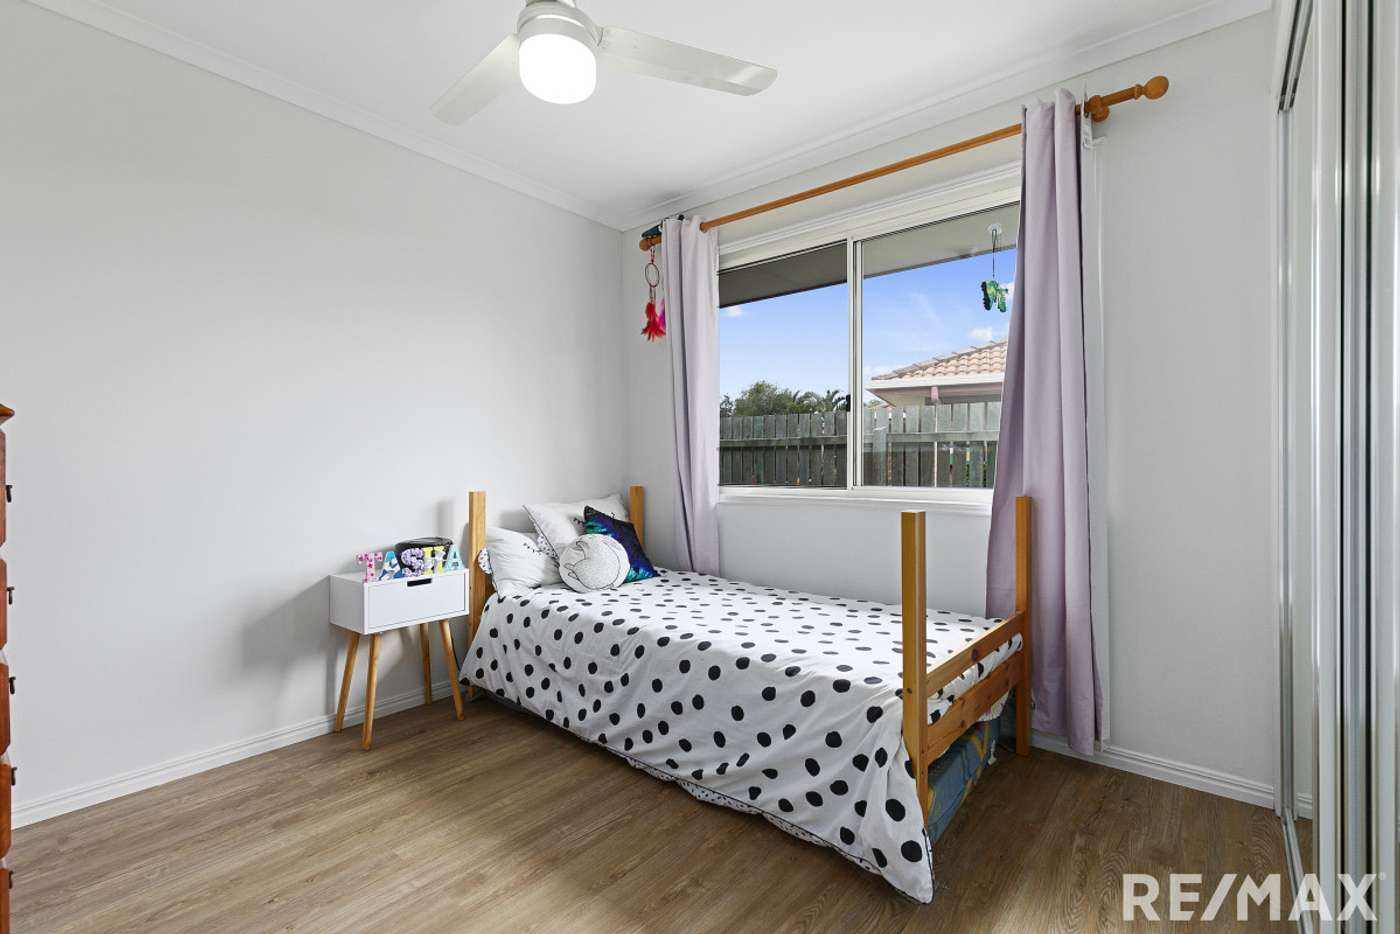 Sixth view of Homely house listing, 14 Currawong Court, Eli Waters QLD 4655